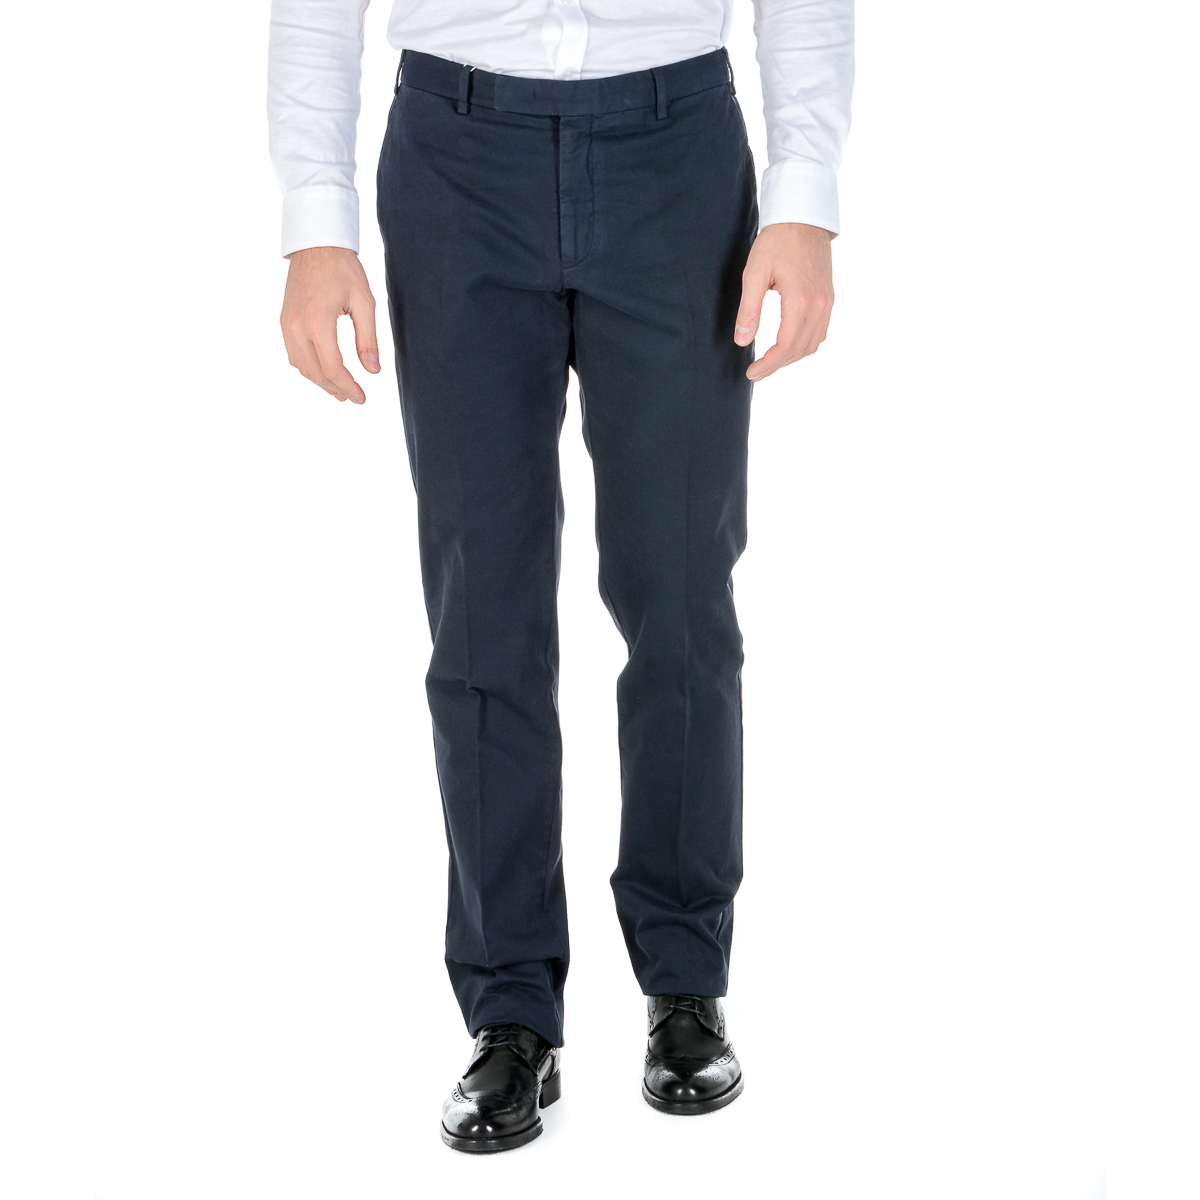 Primary image for Armani Collezioni Mens Pants Dark Blue